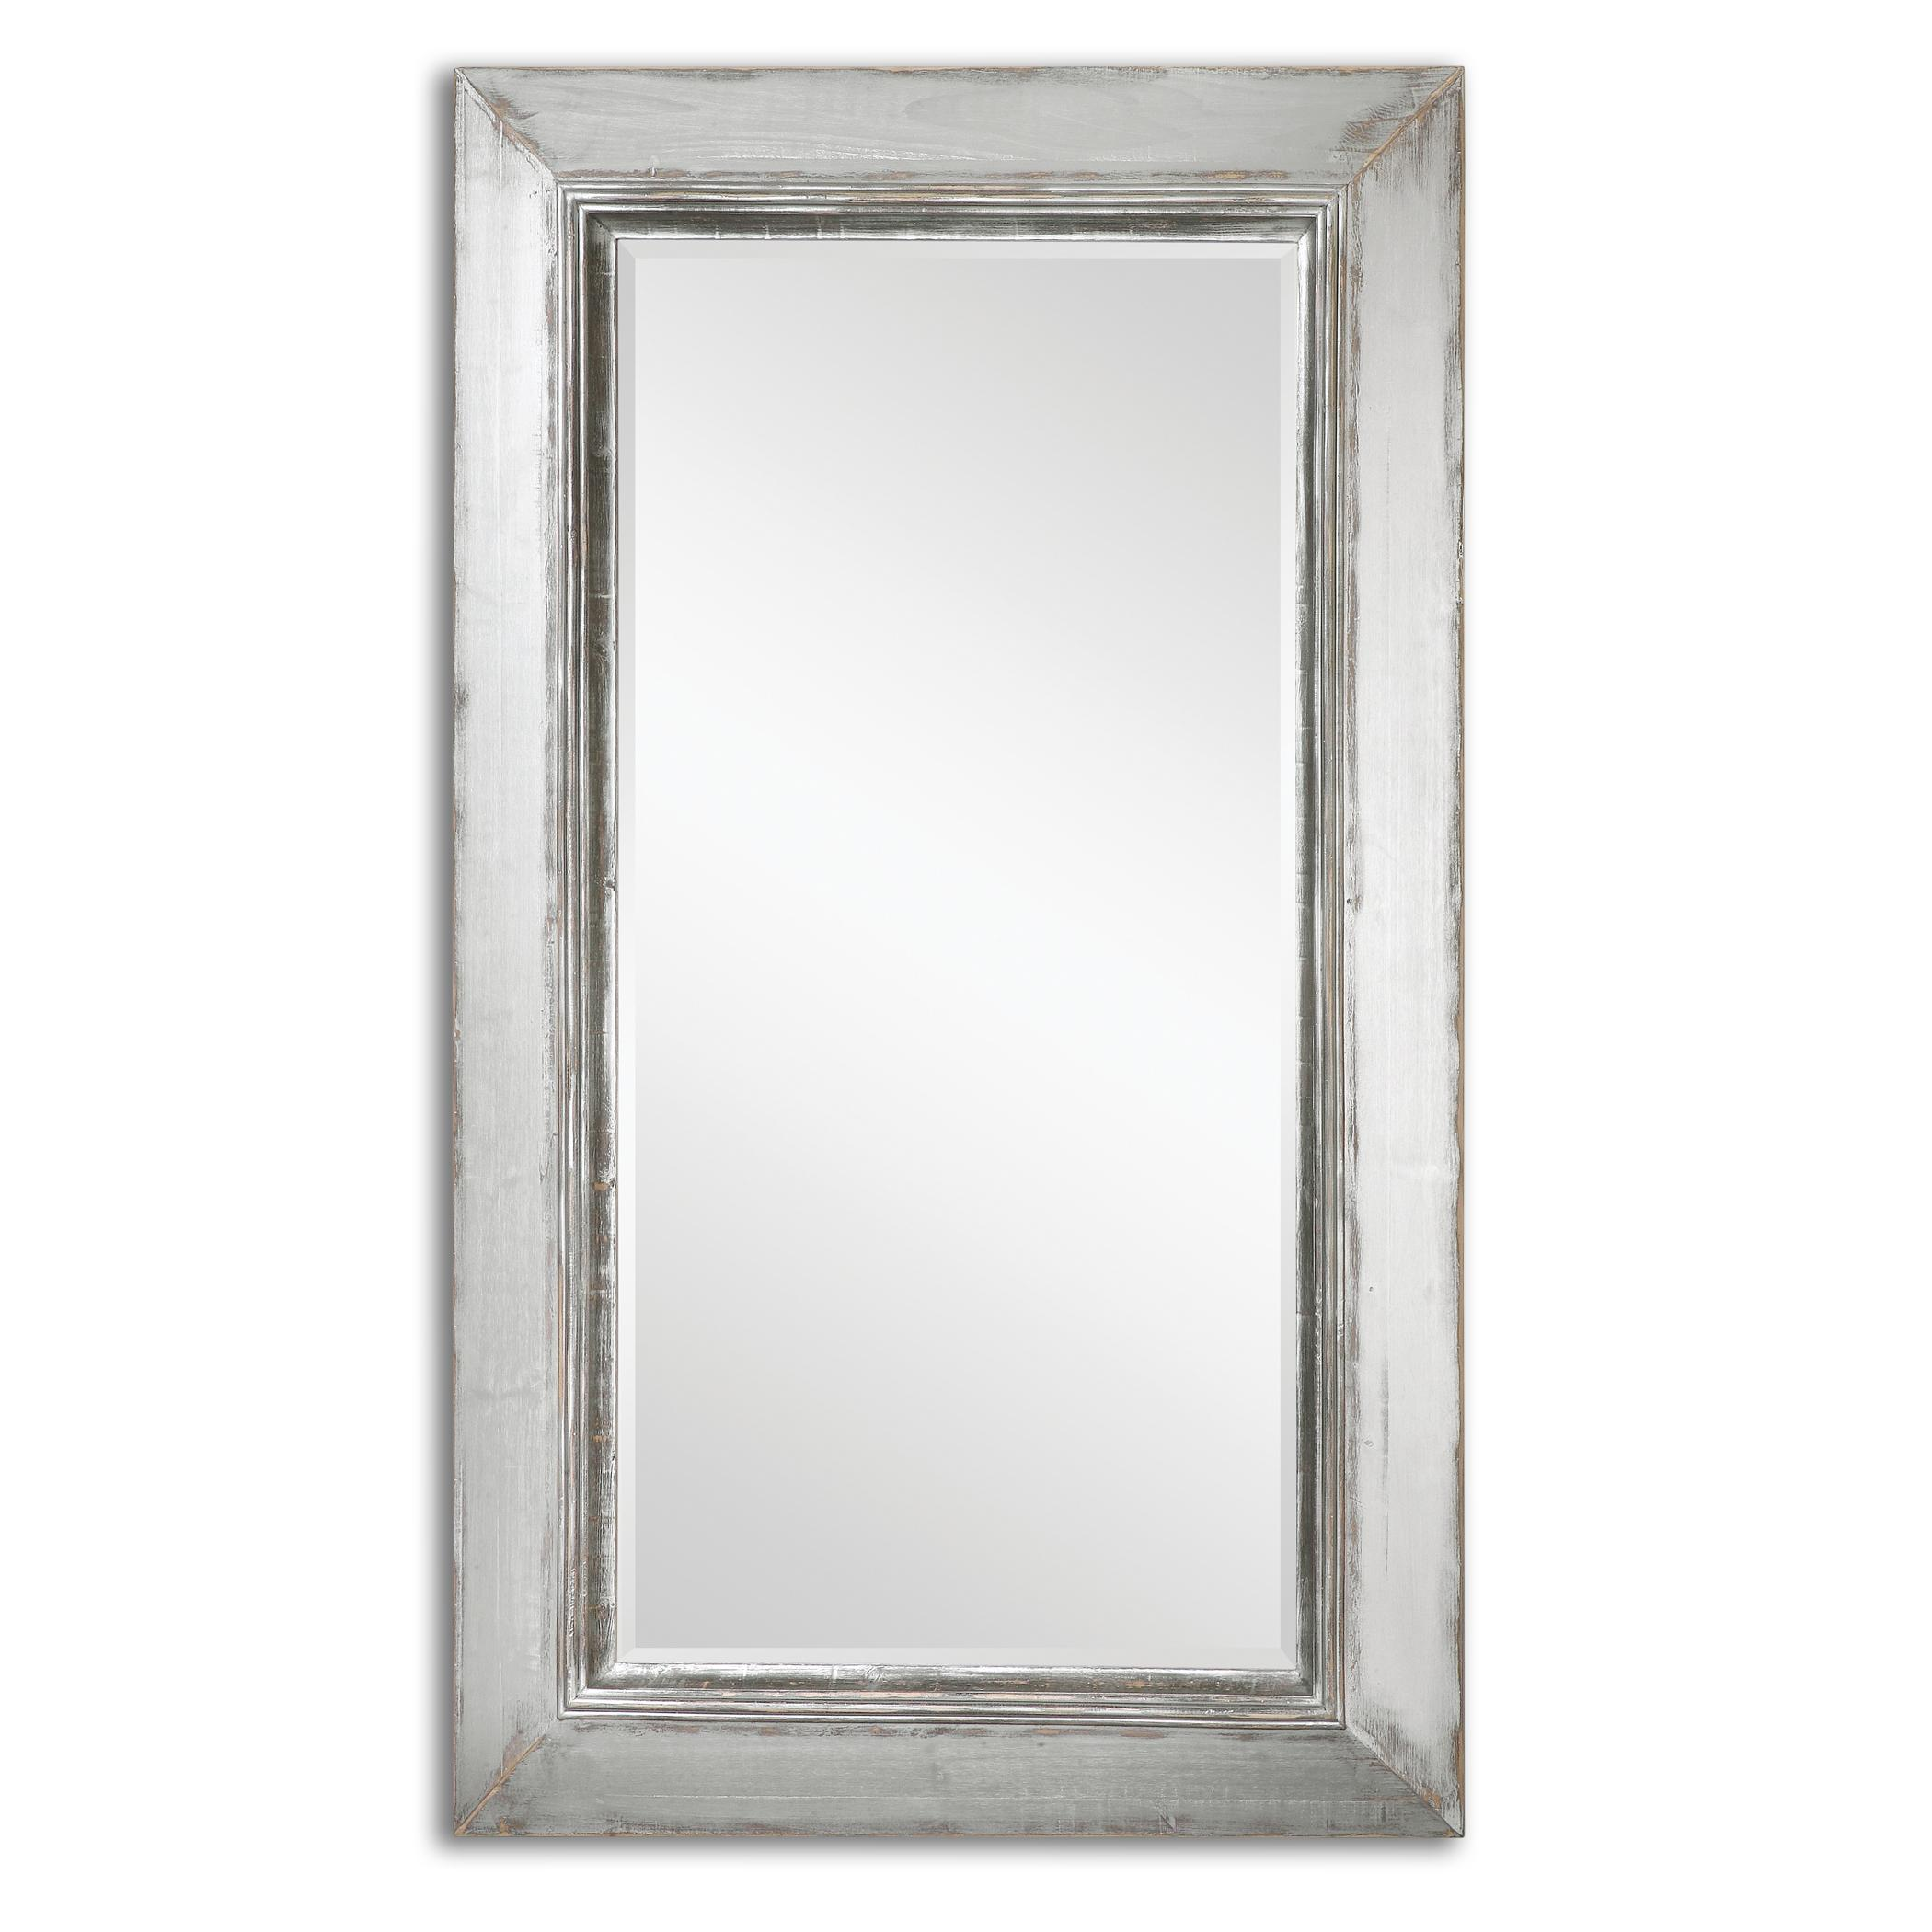 Uttermost Mirrors Lucanus Oversized Silver Mirror - Item Number: 13880